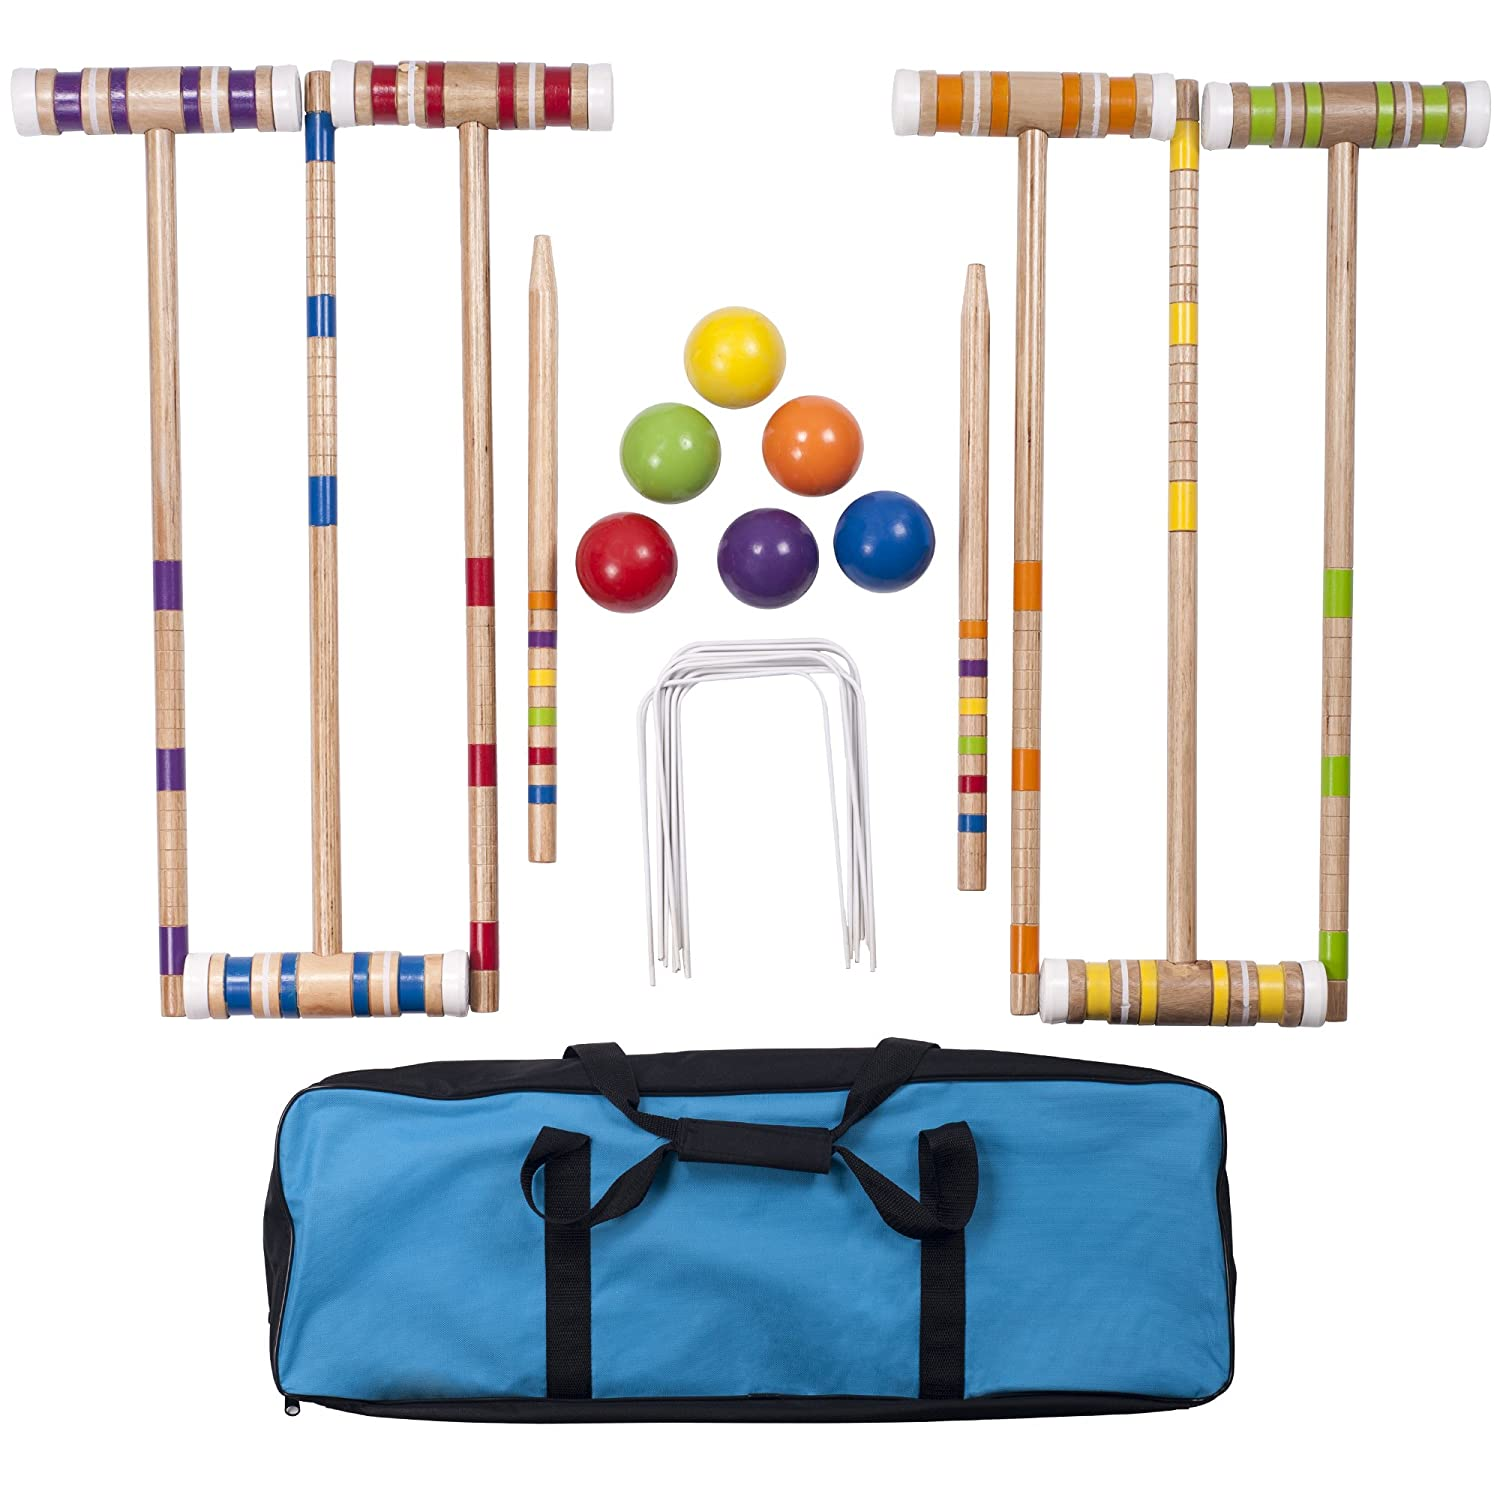 Complete Croquet Set with Carrying Case Hey Play